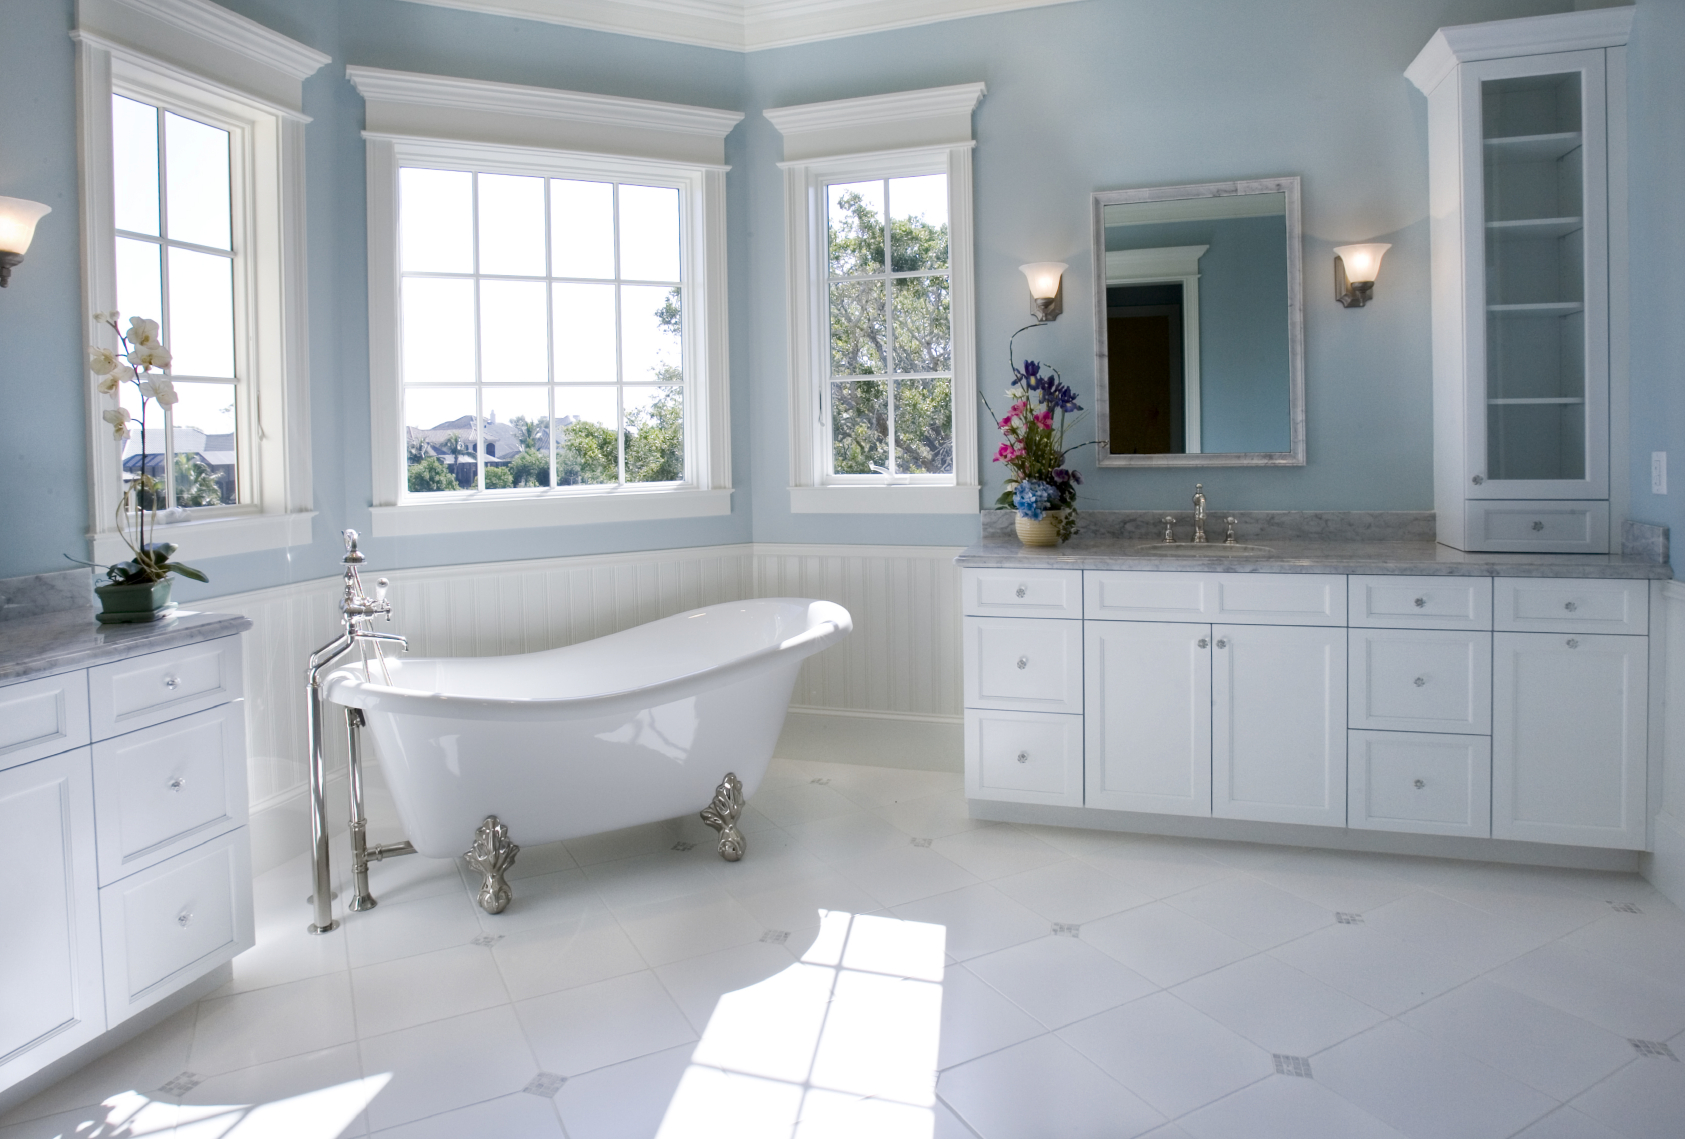 Bathroom Tiles Sky Blue With New Image In Uk | eyagci.com